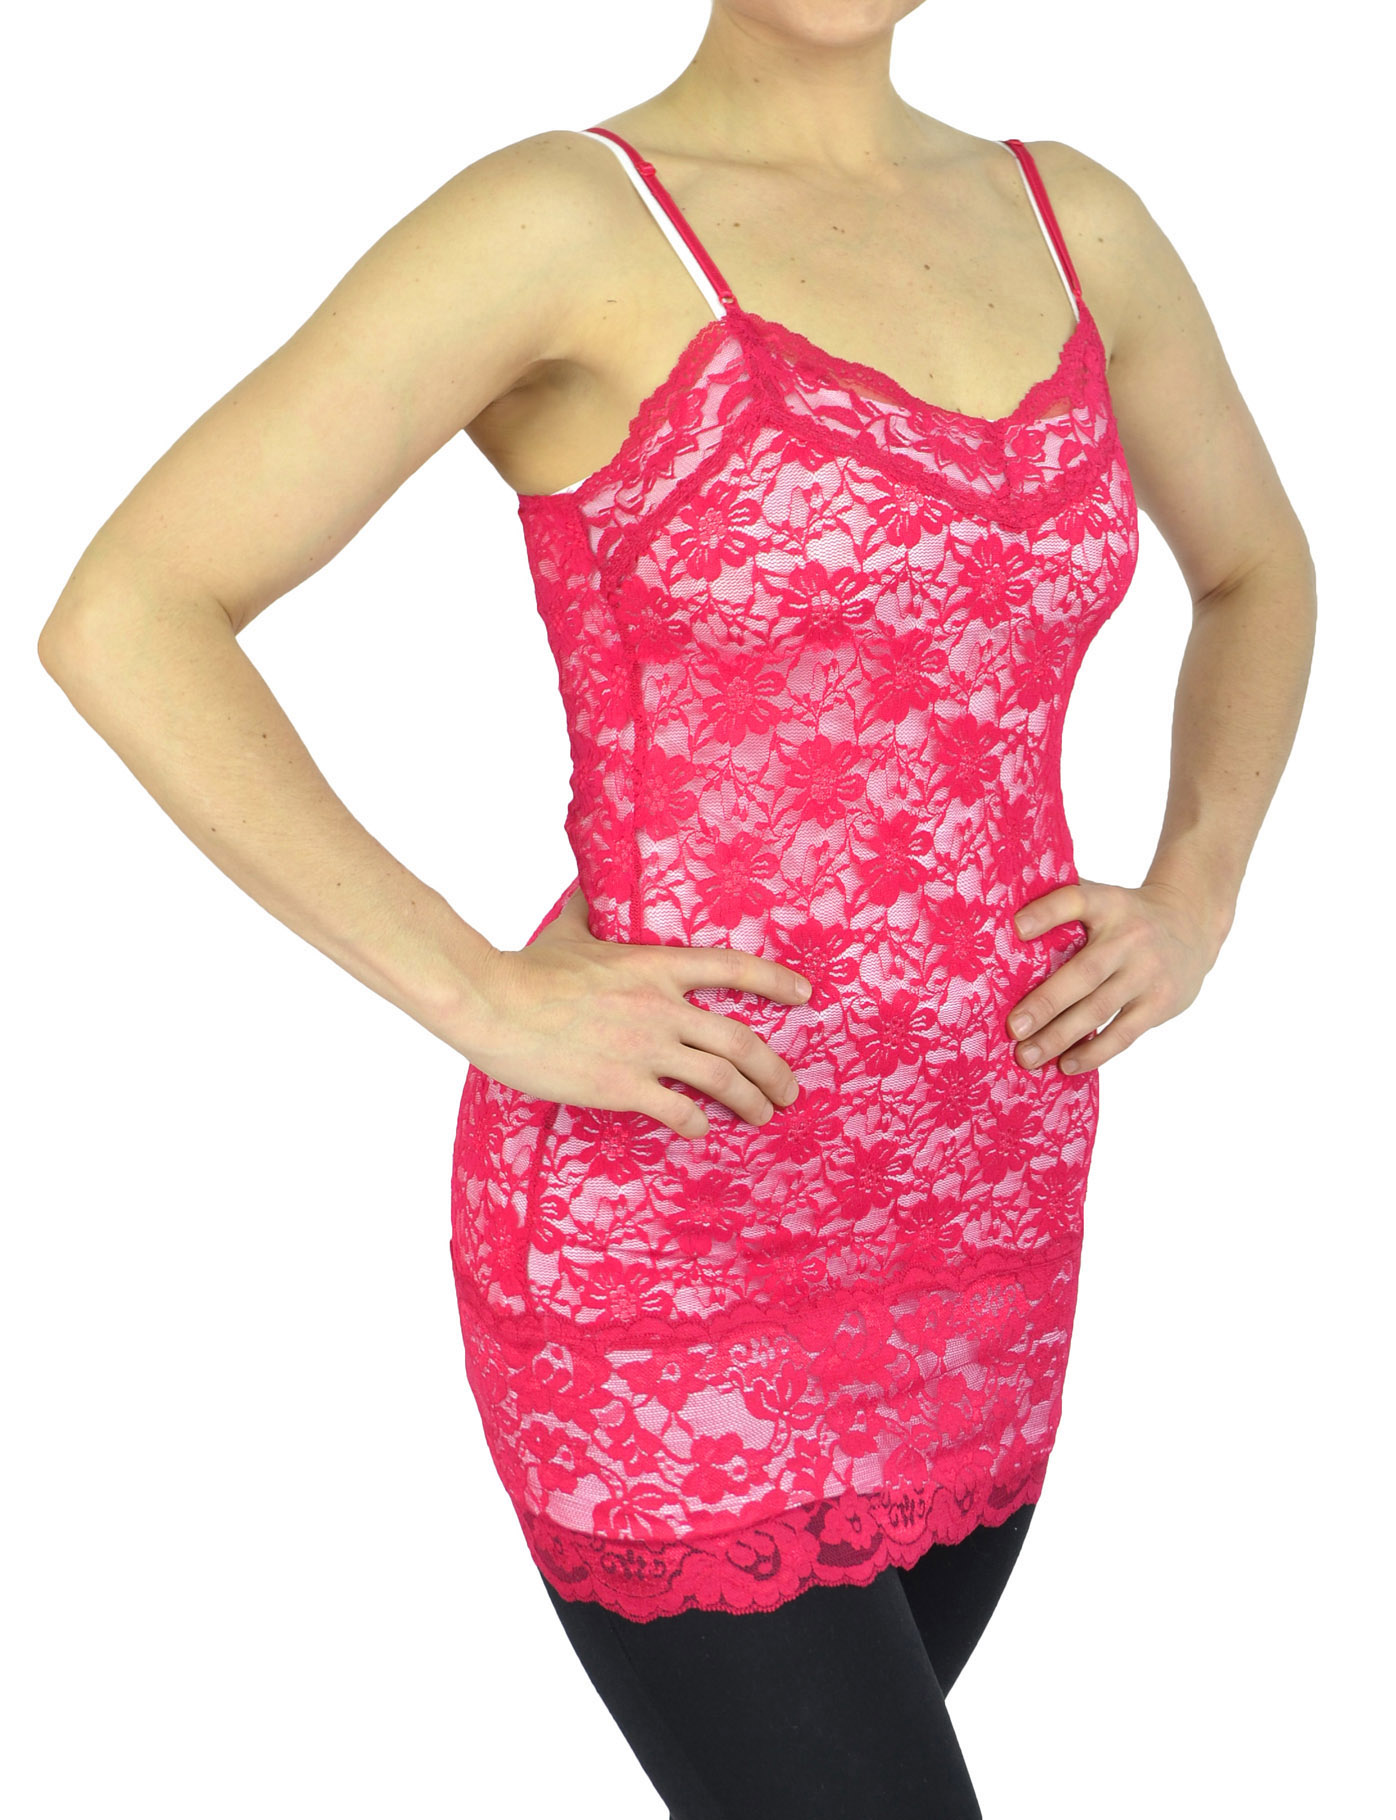 Belle Donne - Womens Tank top Cami Top Spaghetti Strap Lace Camisole Tank Top - LCoral/Small